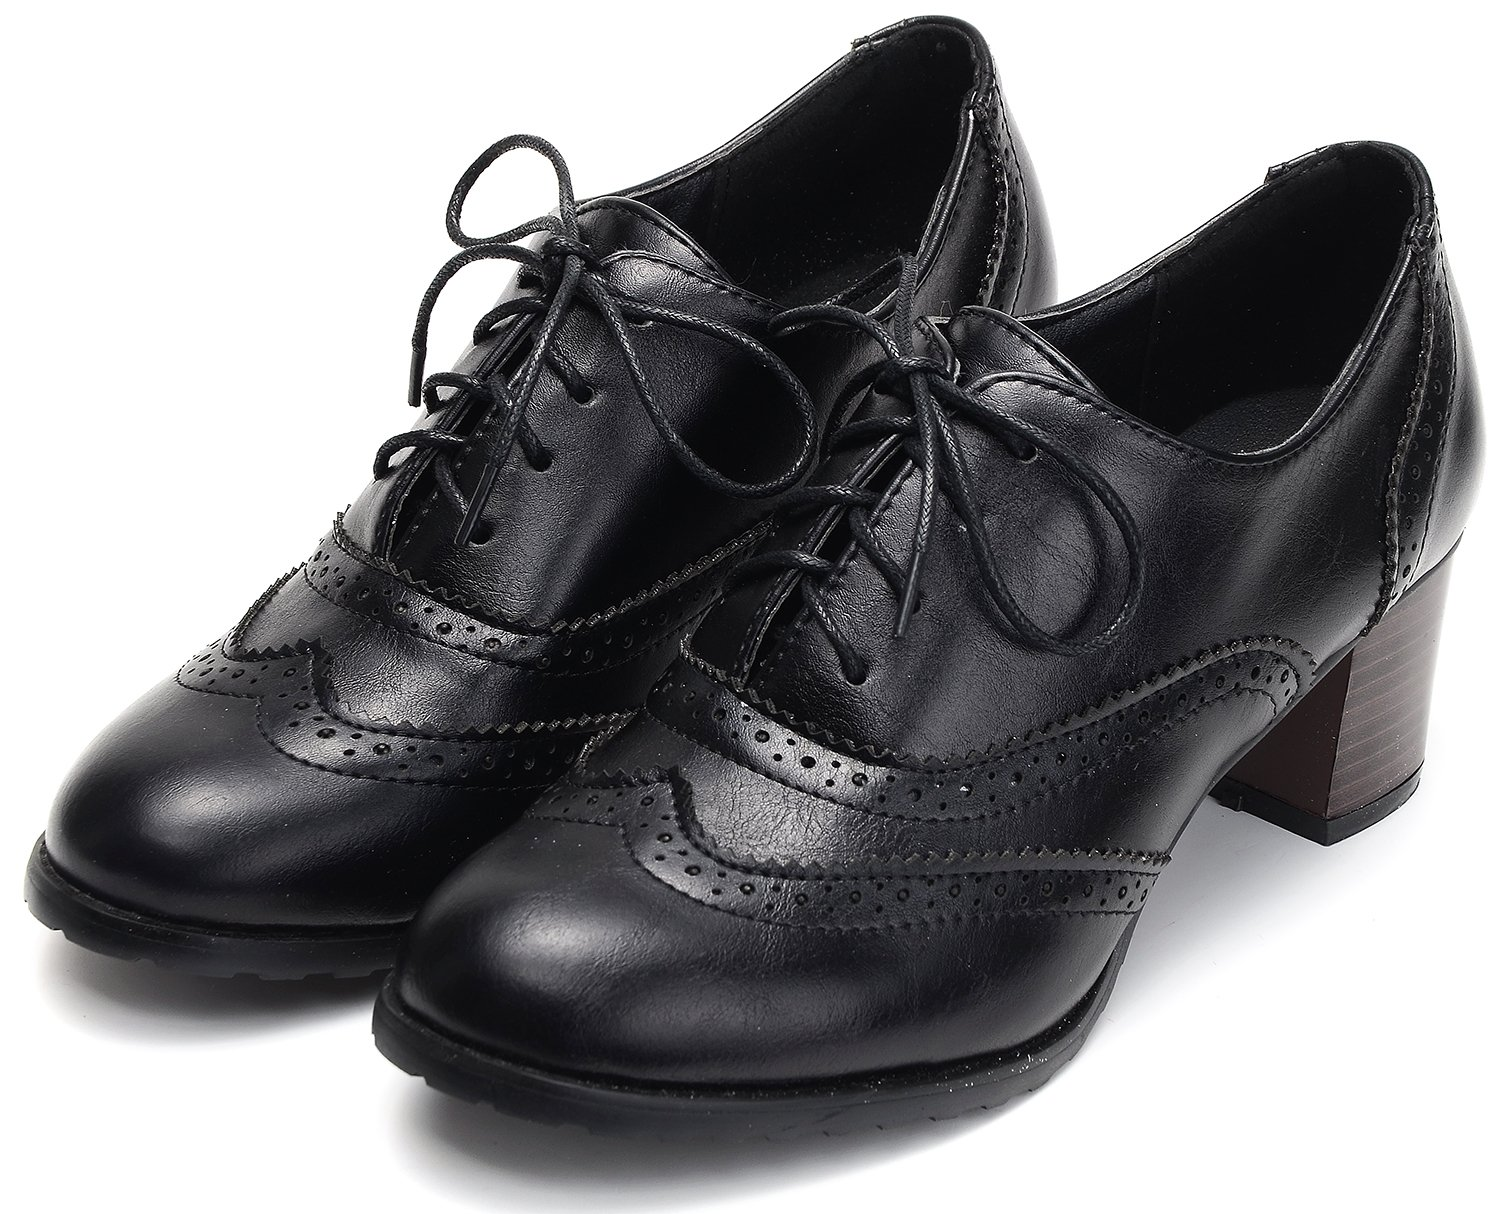 Odema Womens pu Leather Brogue Oxfords Wingtip Lace Up Dress Shoes High Heels Pumps Black by Odema